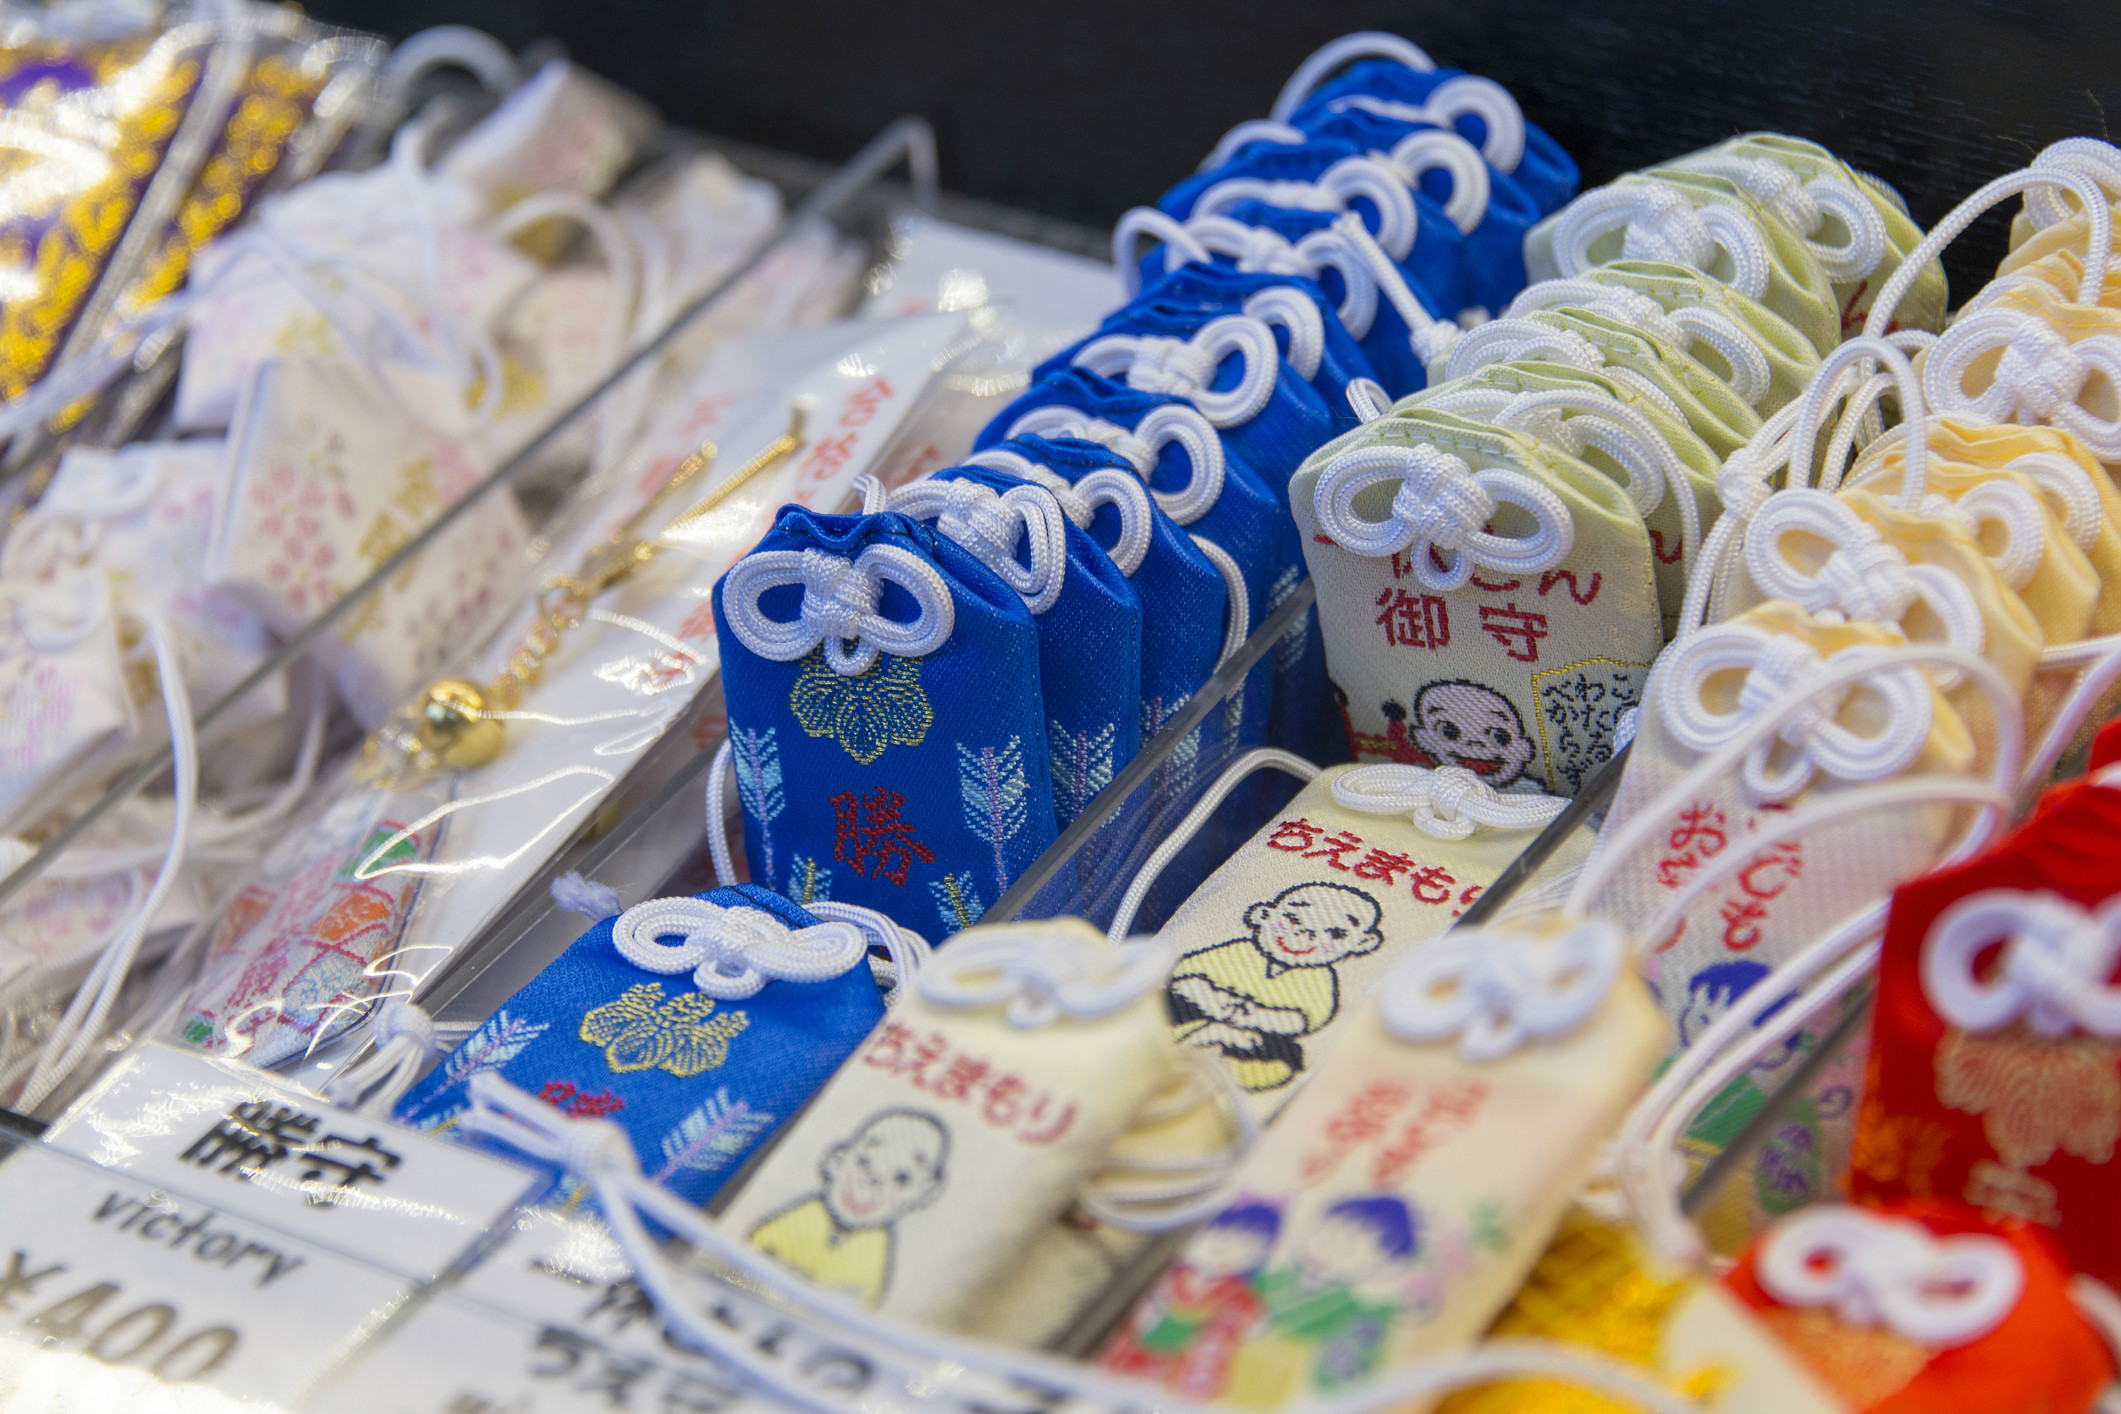 What do you do with an omamori lucky charm?